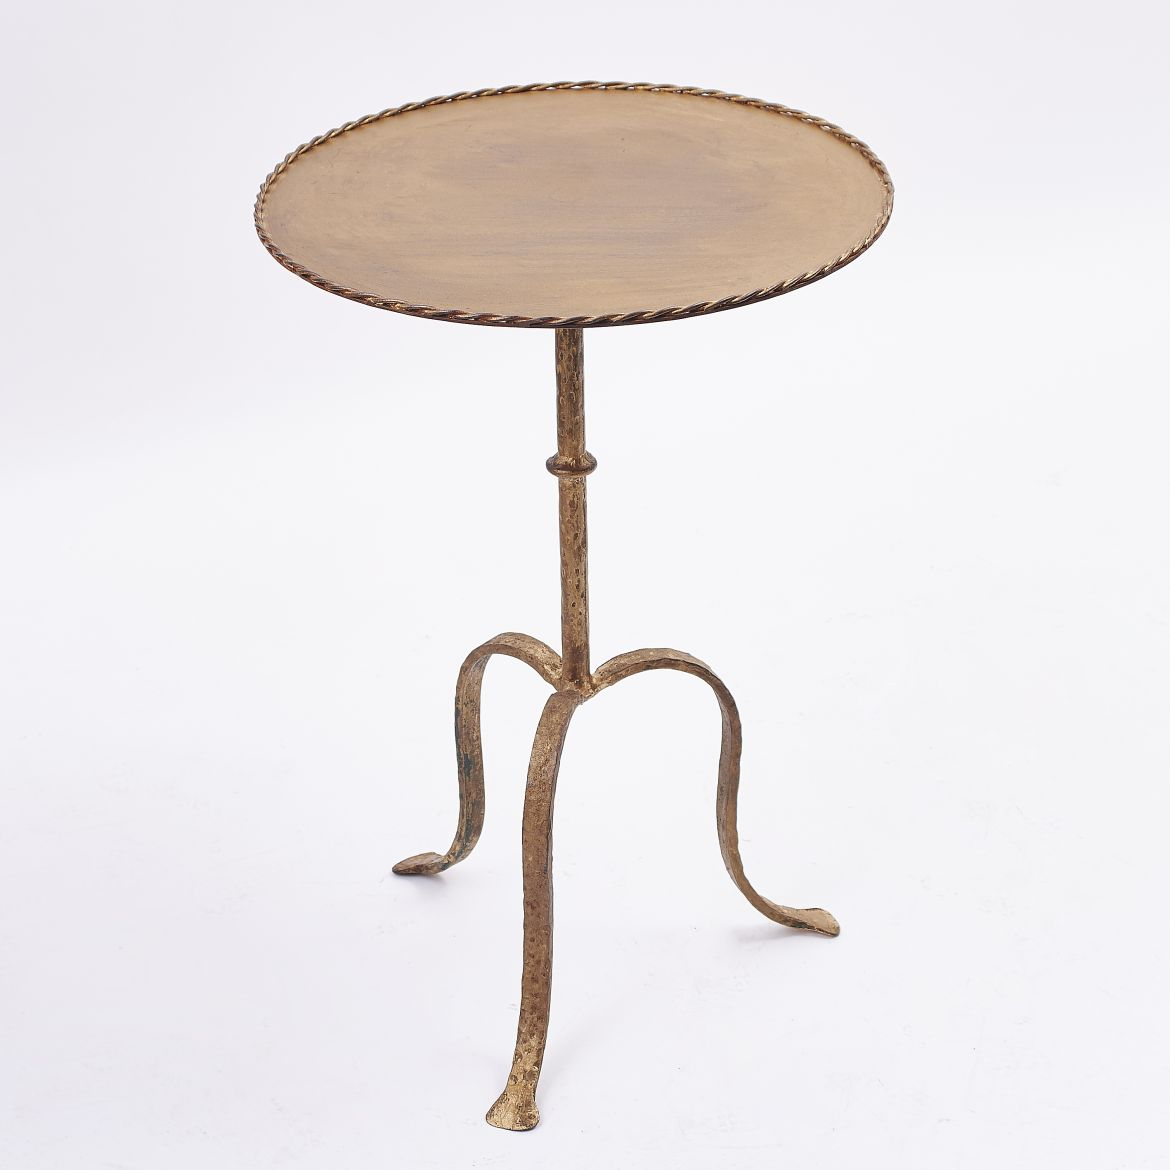 Spanish Iron 'Martini' Table